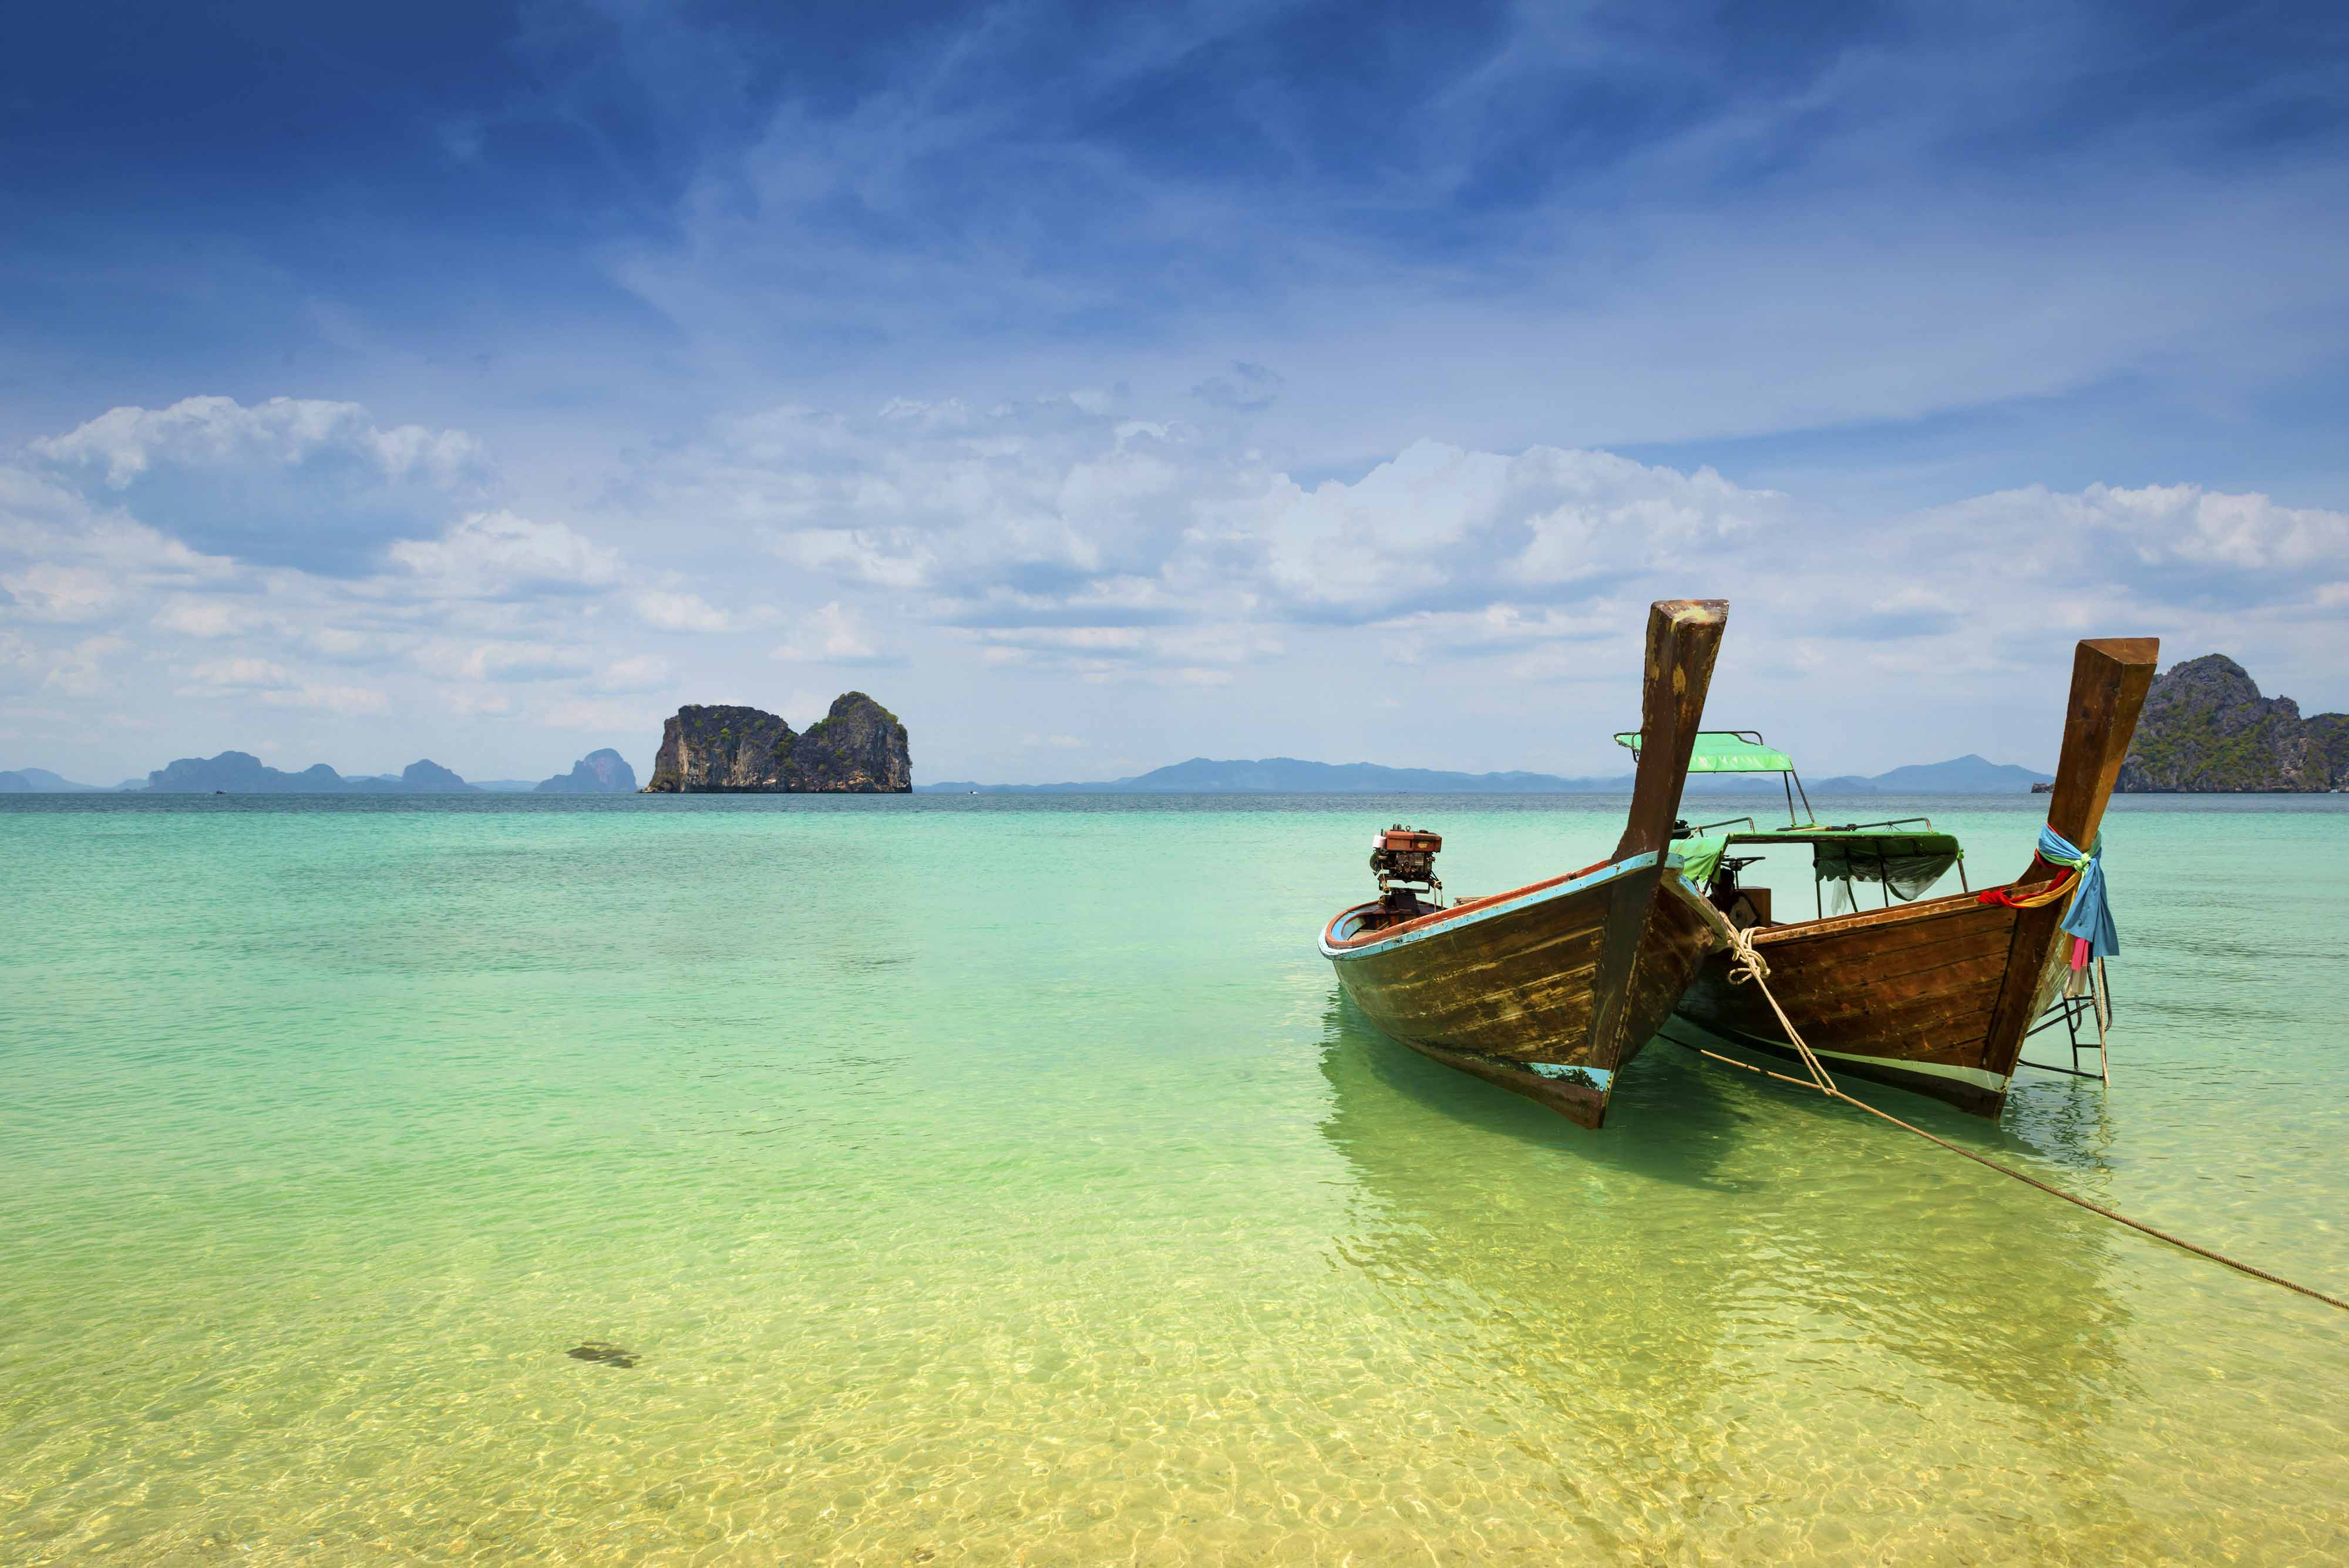 Top 10 places to visit in asia in 2016 from lonely planet cnn travel